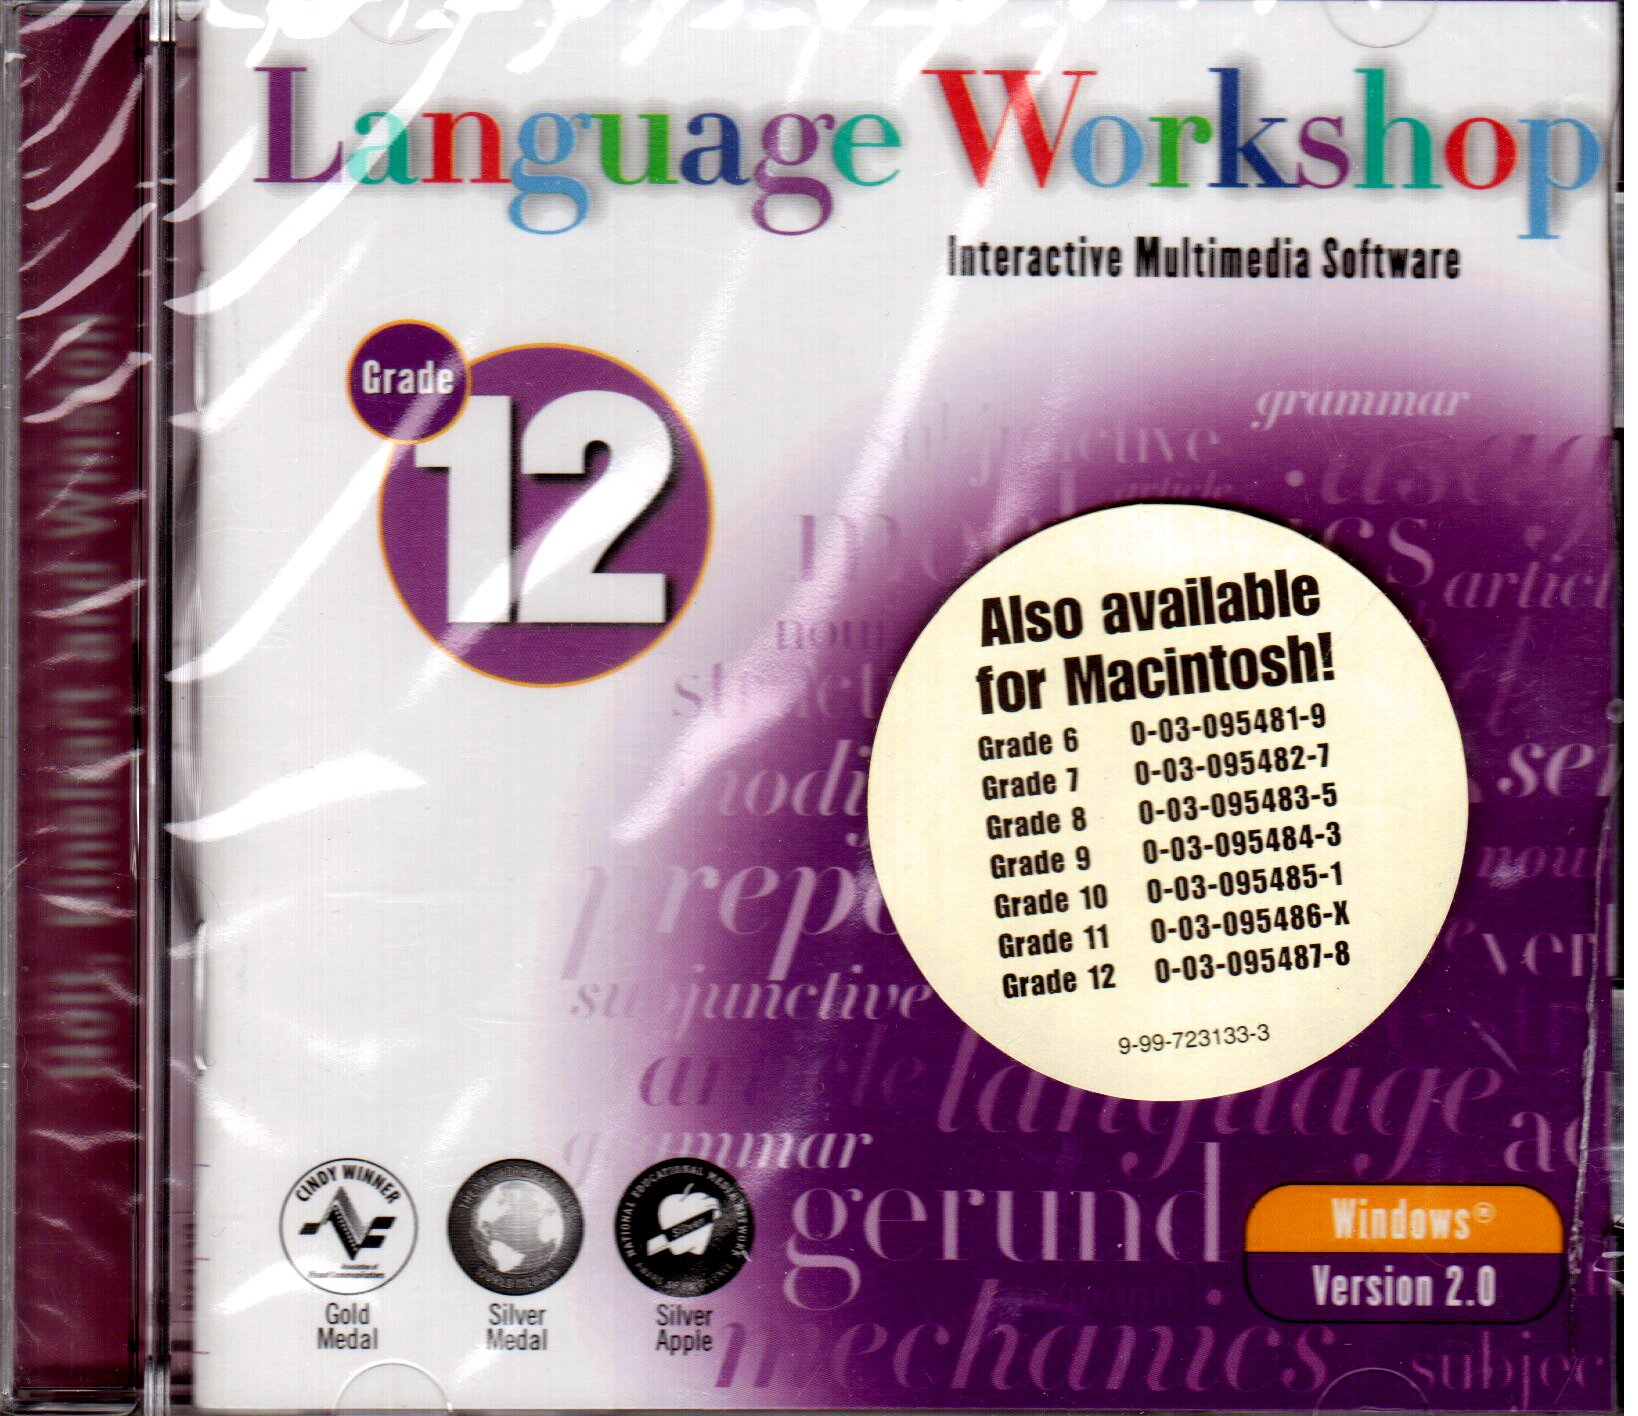 Download Language Workshop, Grade 12: Interactive Multimedia Software (Windows version) ebook